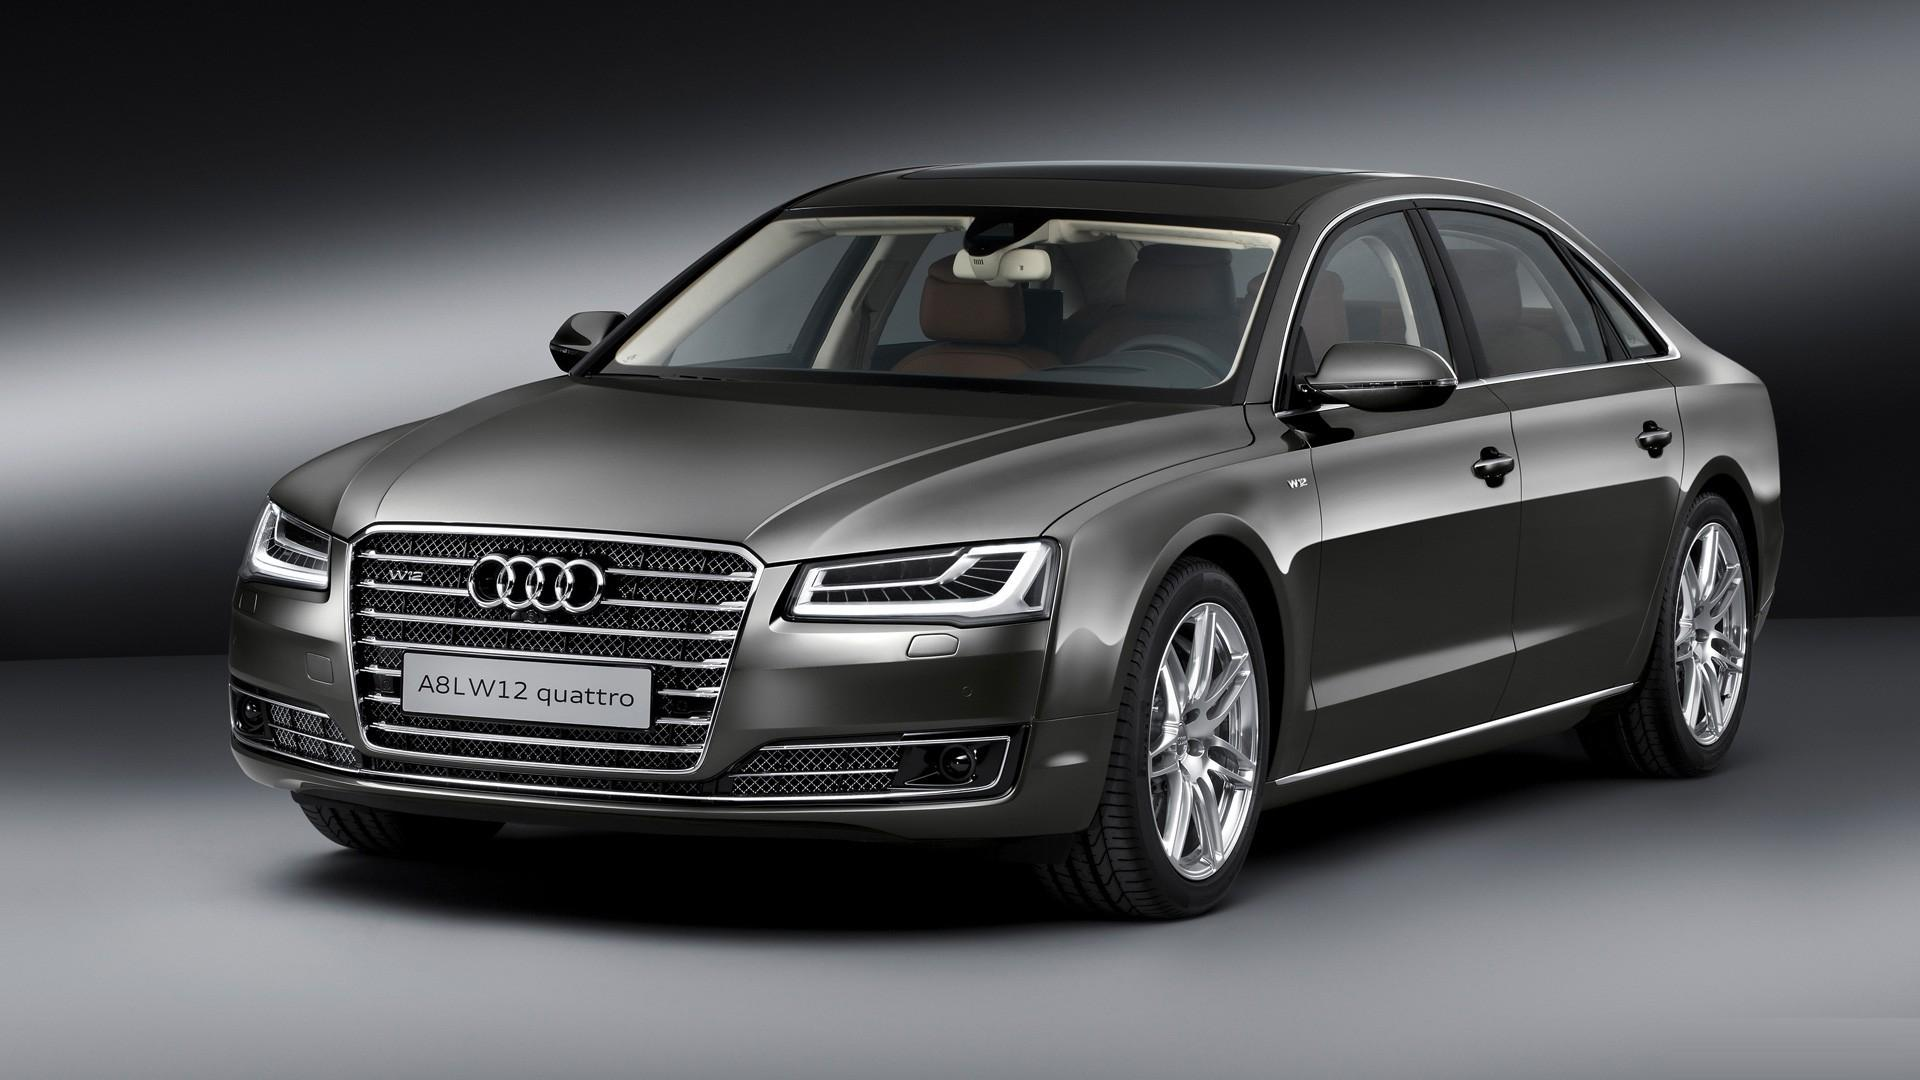 Limited Audi A8 Edition 21 Available for Order in the UK